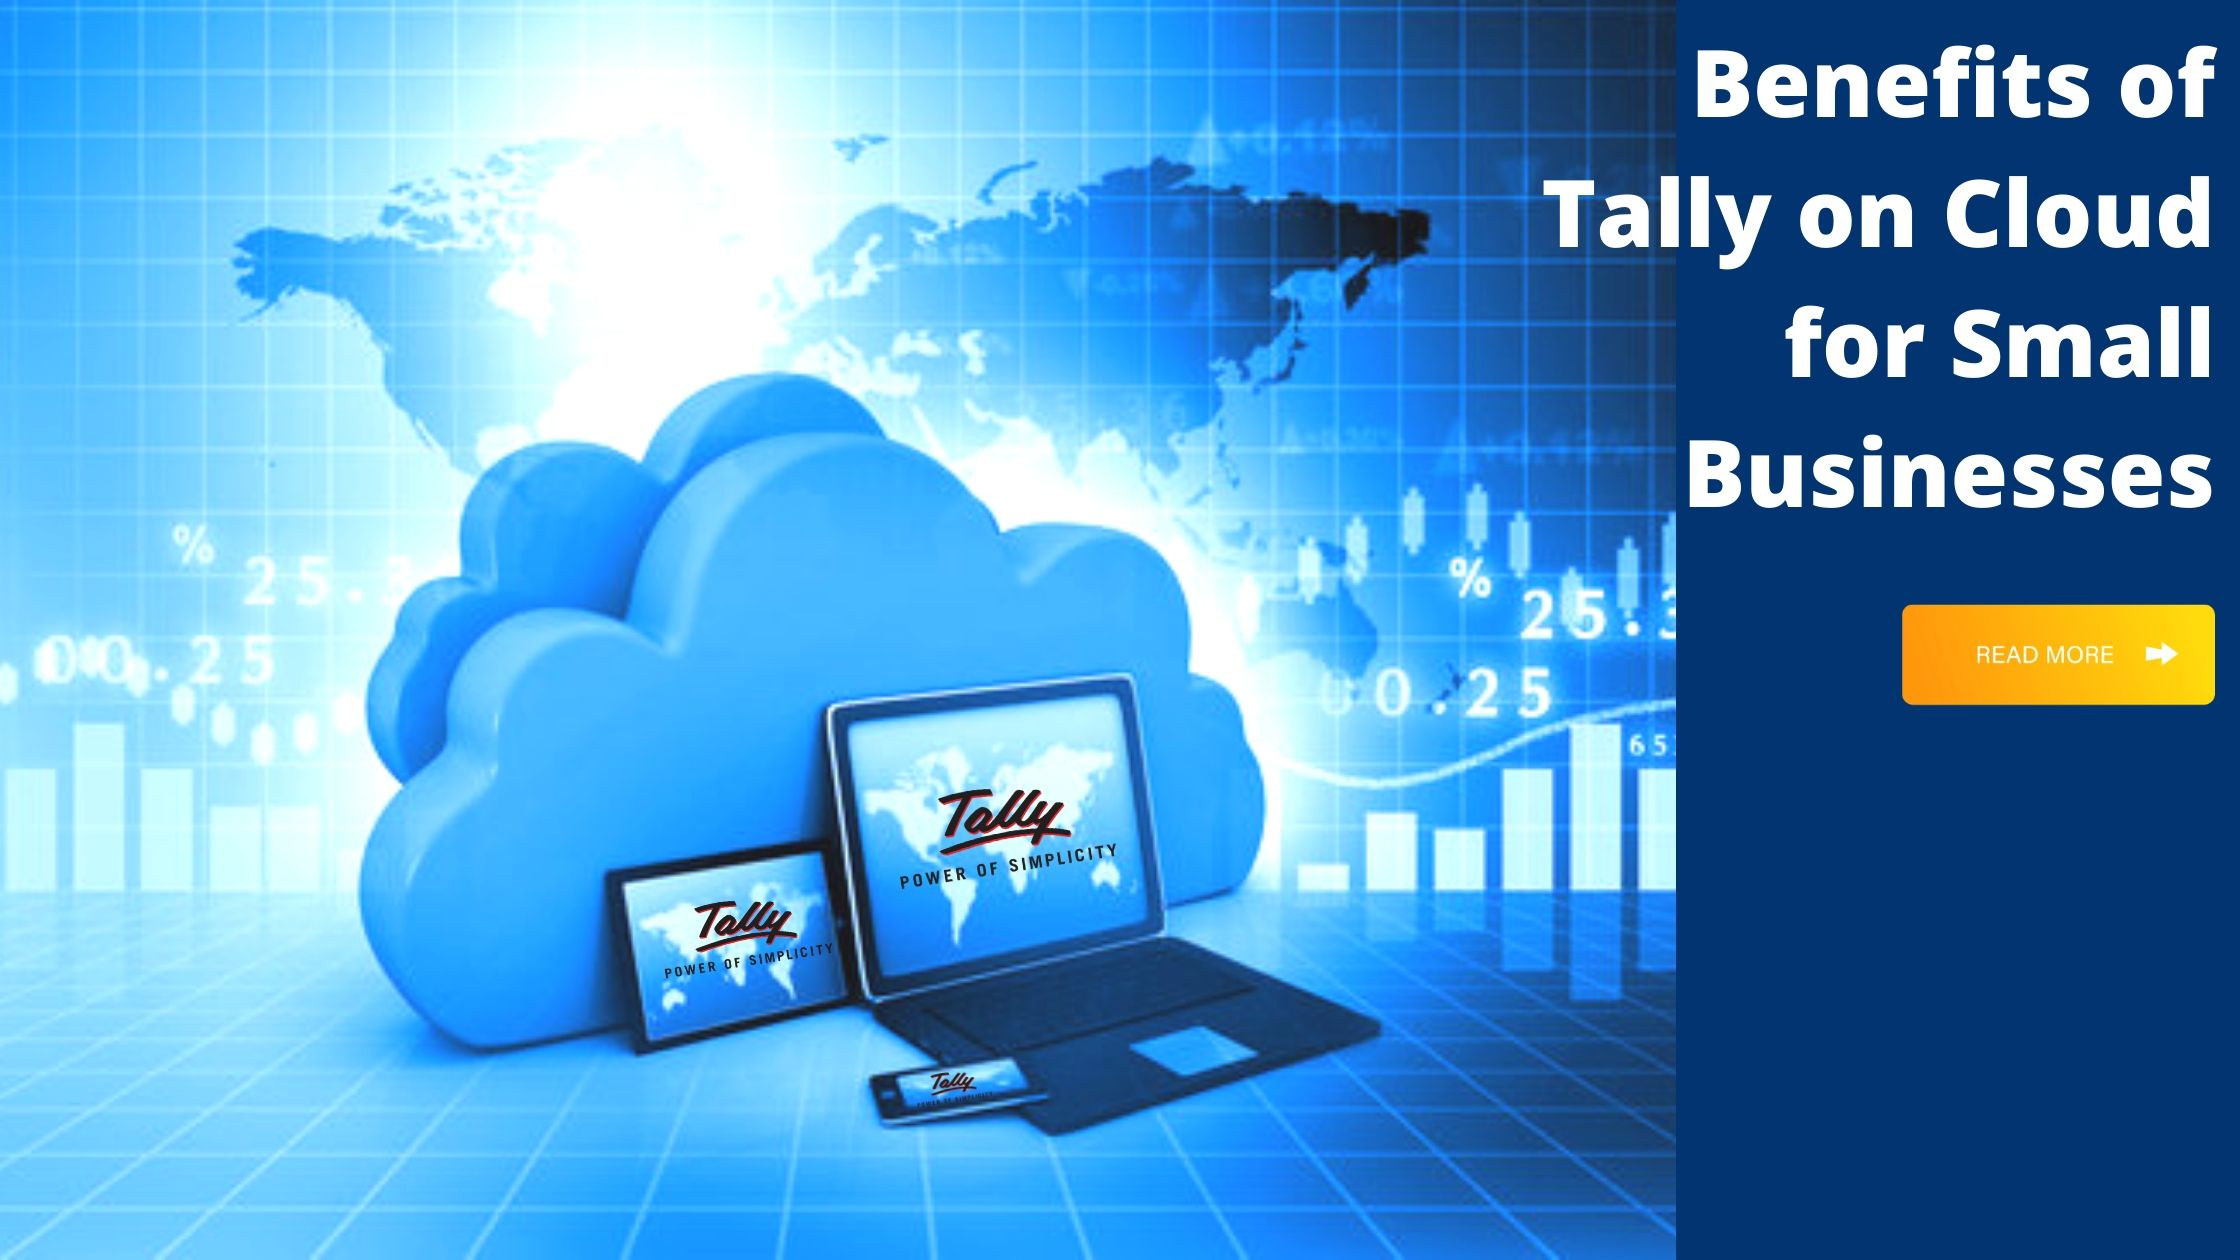 Tally on Cloud for Small Businesses